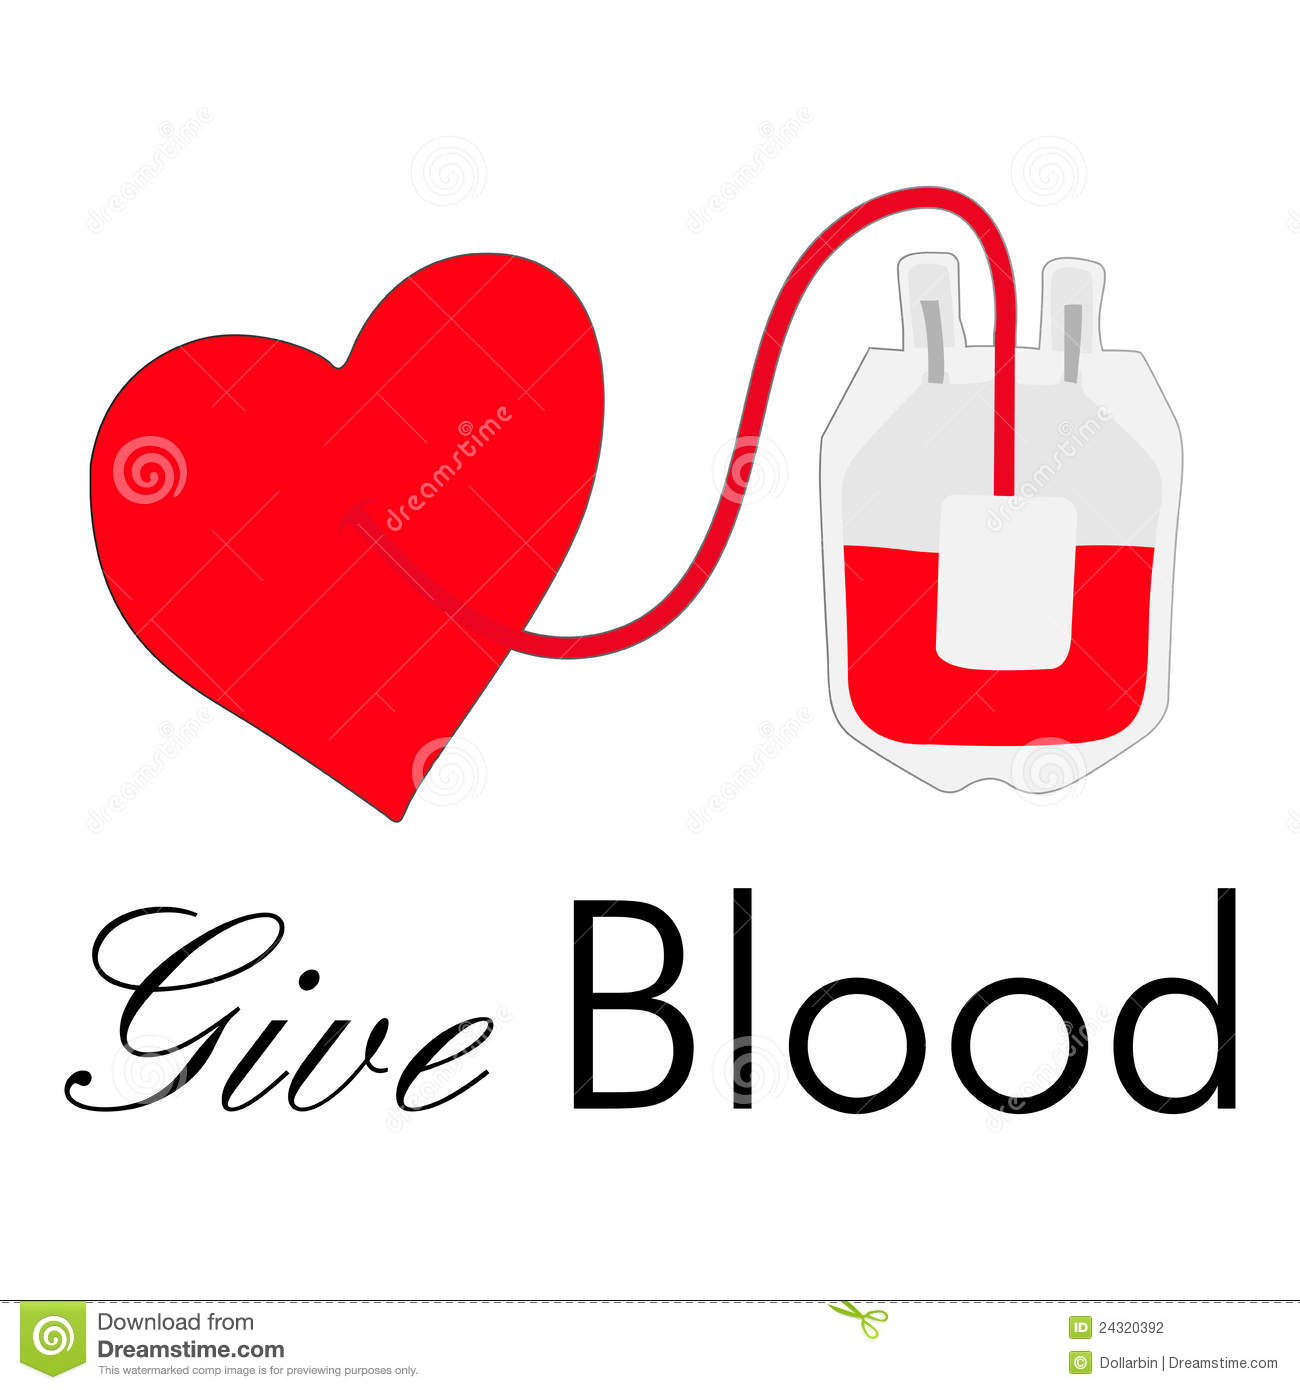 Blood clipart blood drive. Heart